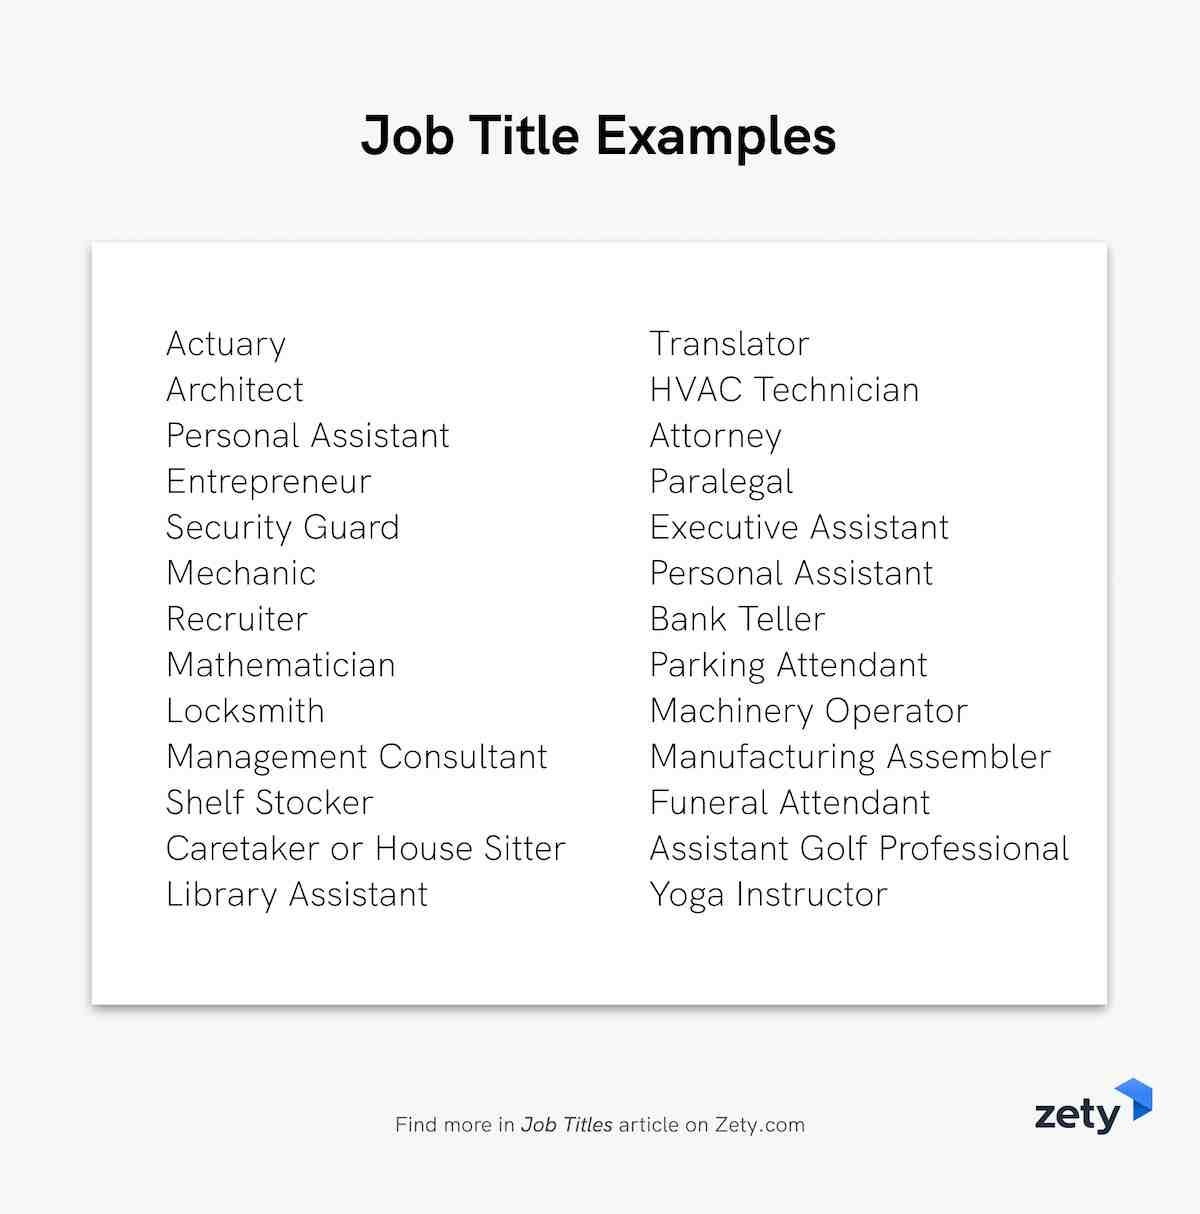 20 Job Titles for Professional Positions [Current & Desired]